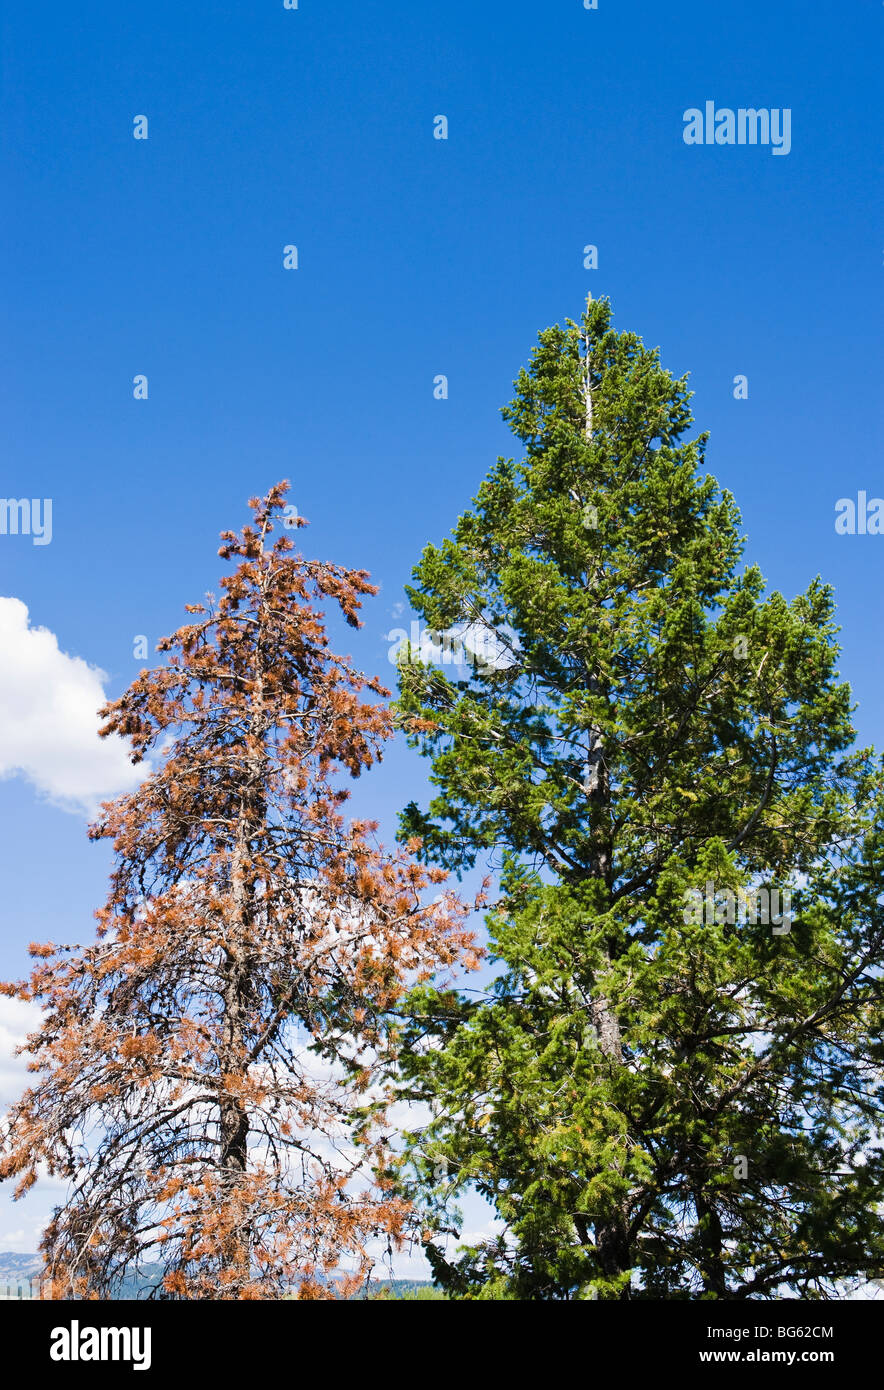 A Lodgepole pine after being infested and killed by the Mountain Pine Beetle next to a live Lodgepole Pine in Grand - Stock Image